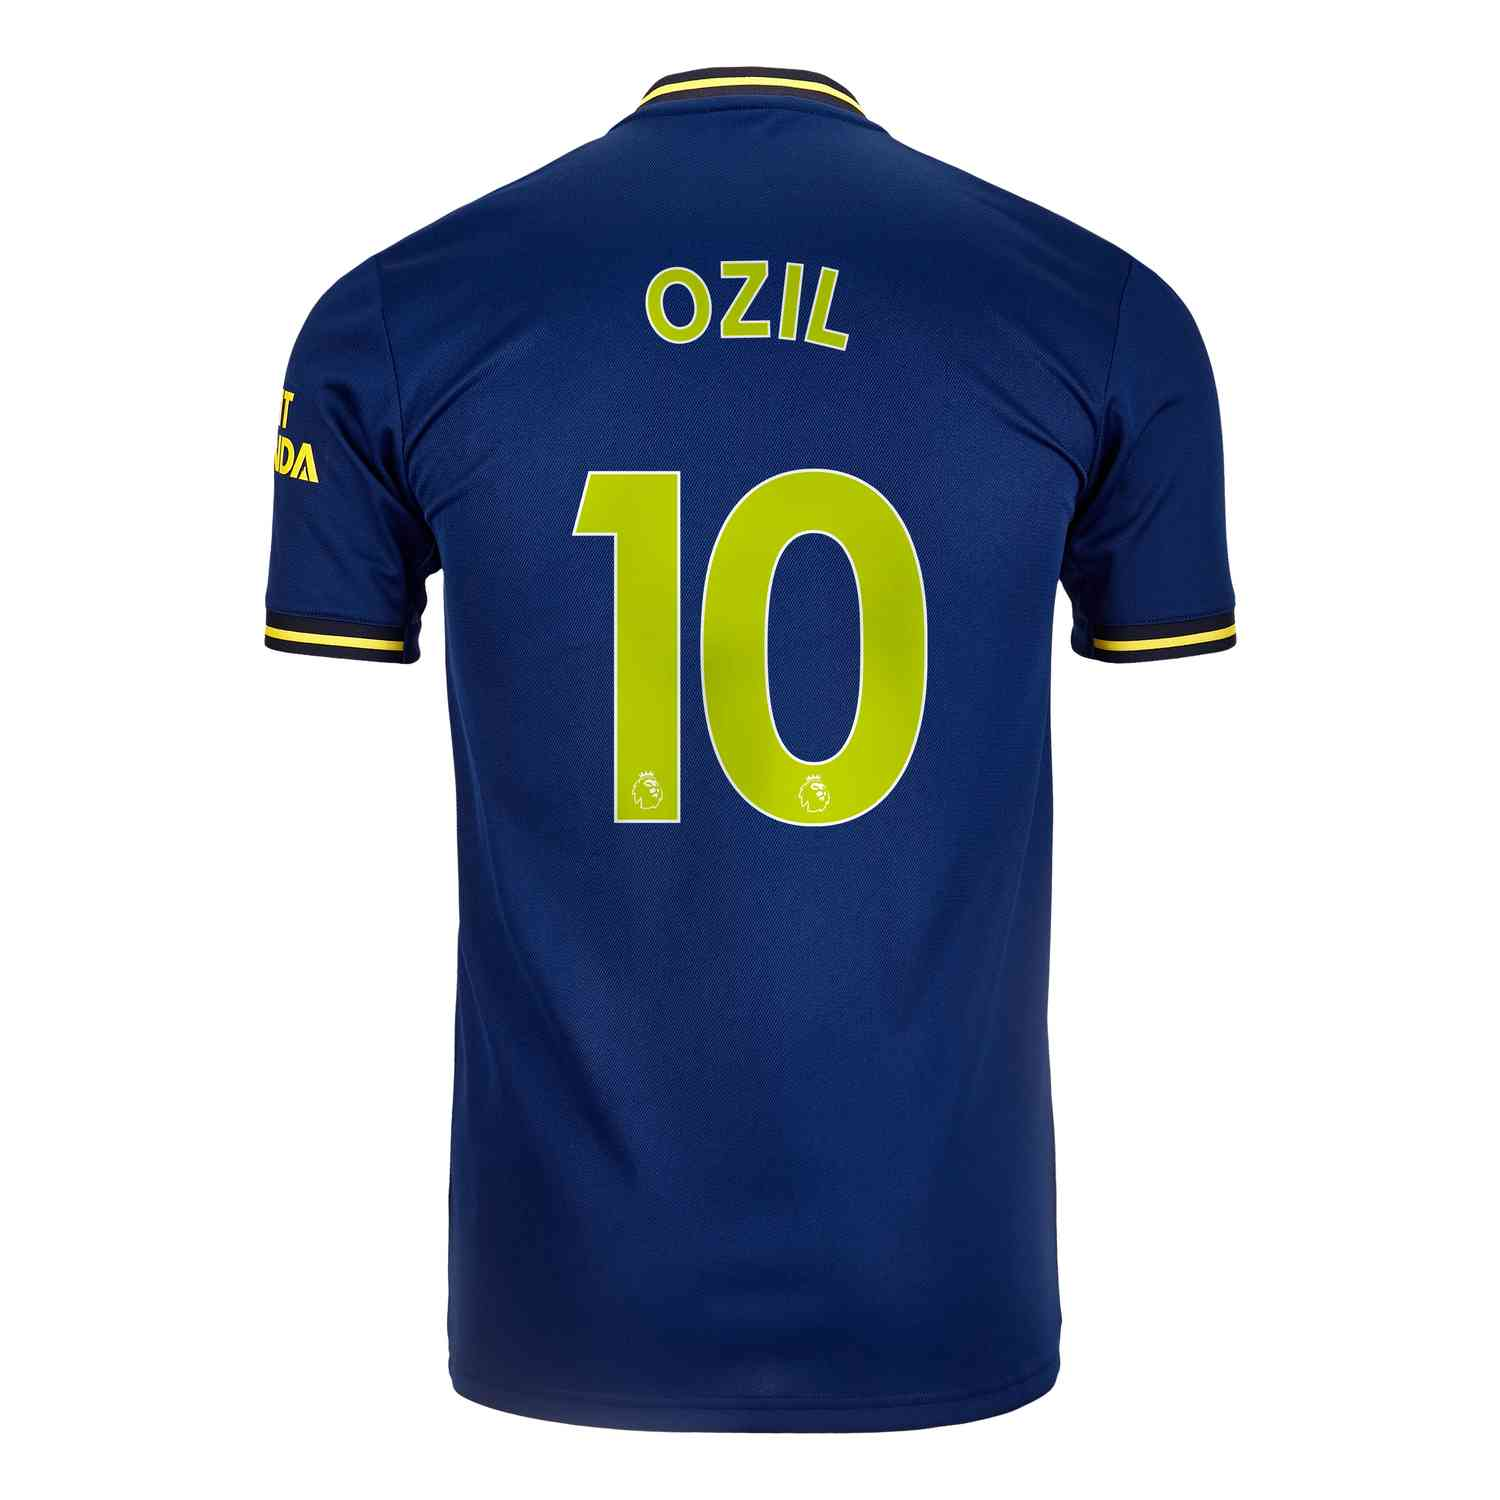 the best attitude 88767 049b3 2019/20 Kids Mesut Ozil Arsenal 3rd Jersey